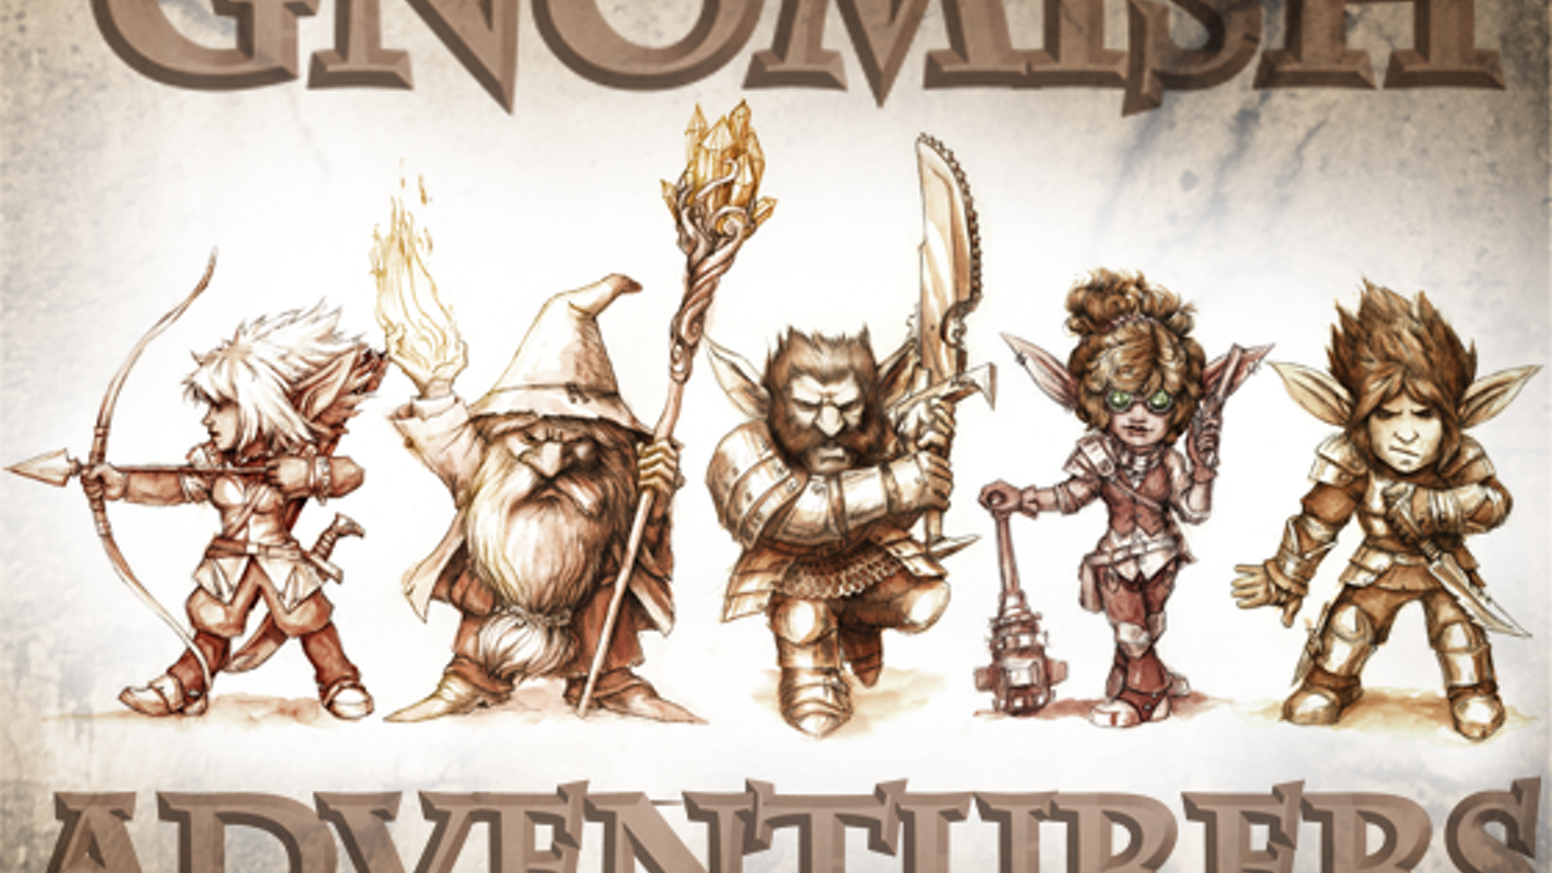 The Gnomish Adventurers Project will produce a set of Gnome hero miniatures for dungeon-crawling, RPGs and 28mm tabletop wargames.